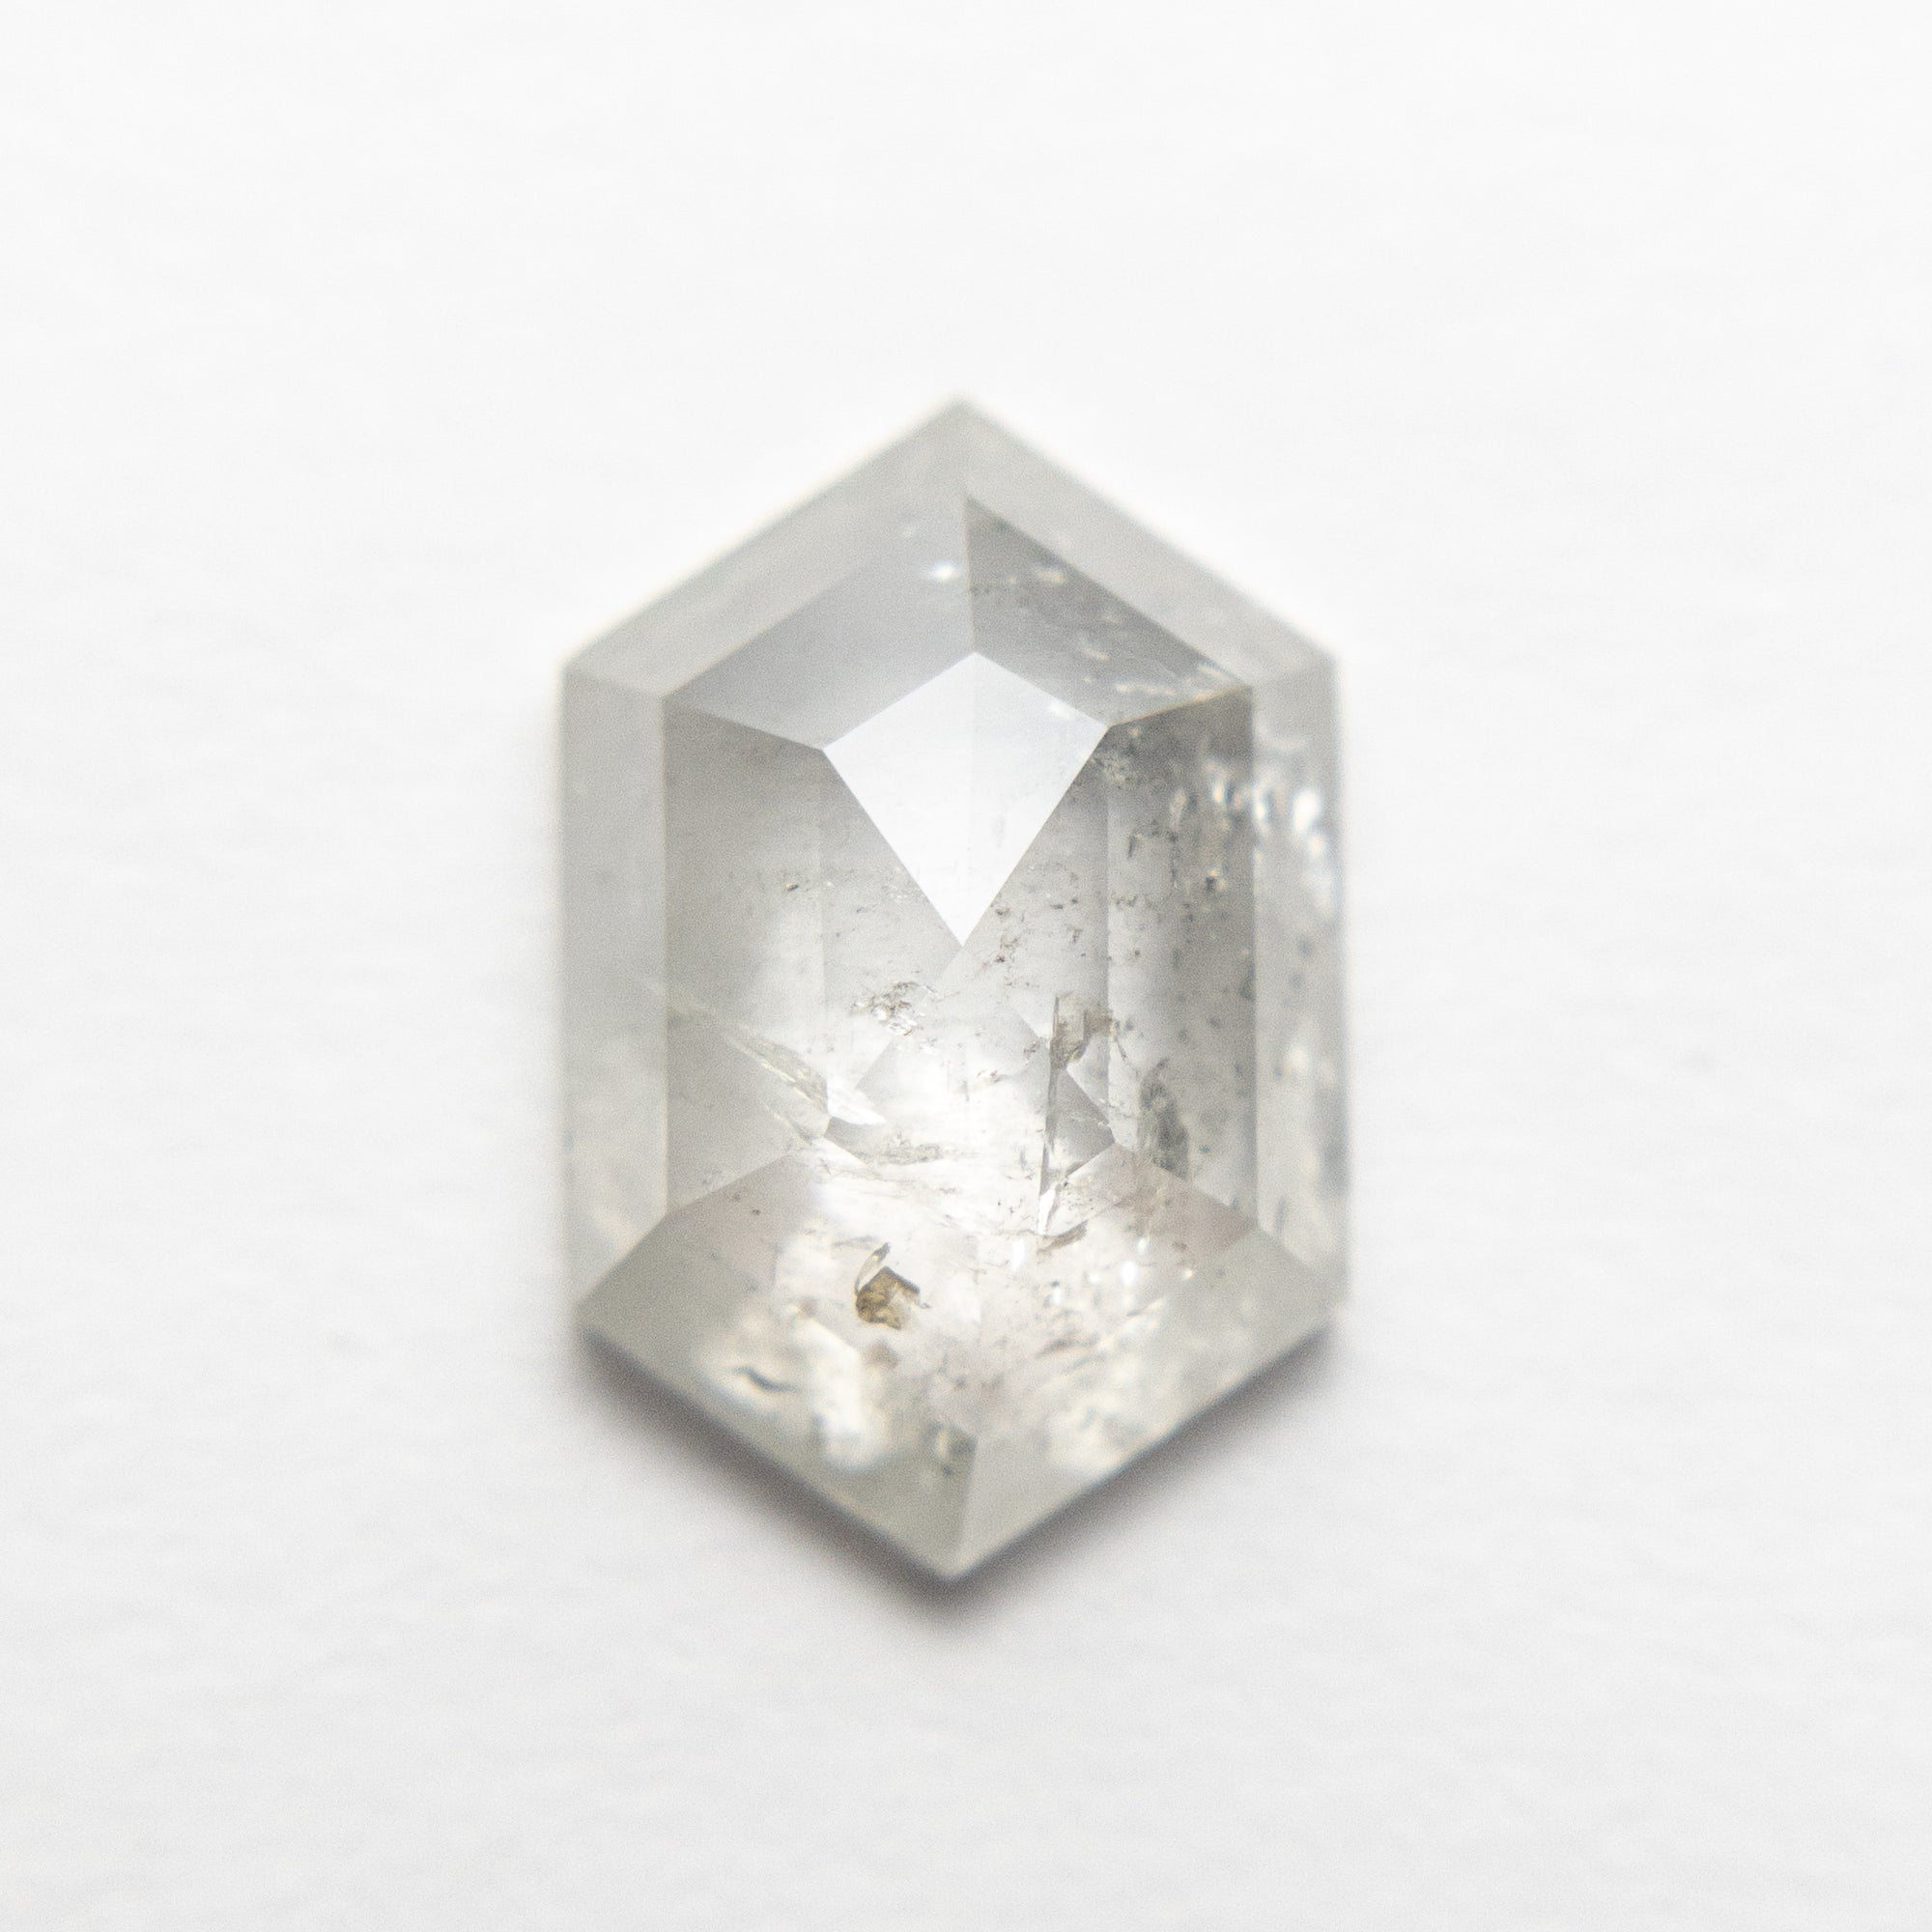 2.11ct 10.67x7.06x3.24mm Hexagon Rosecut 18553-11